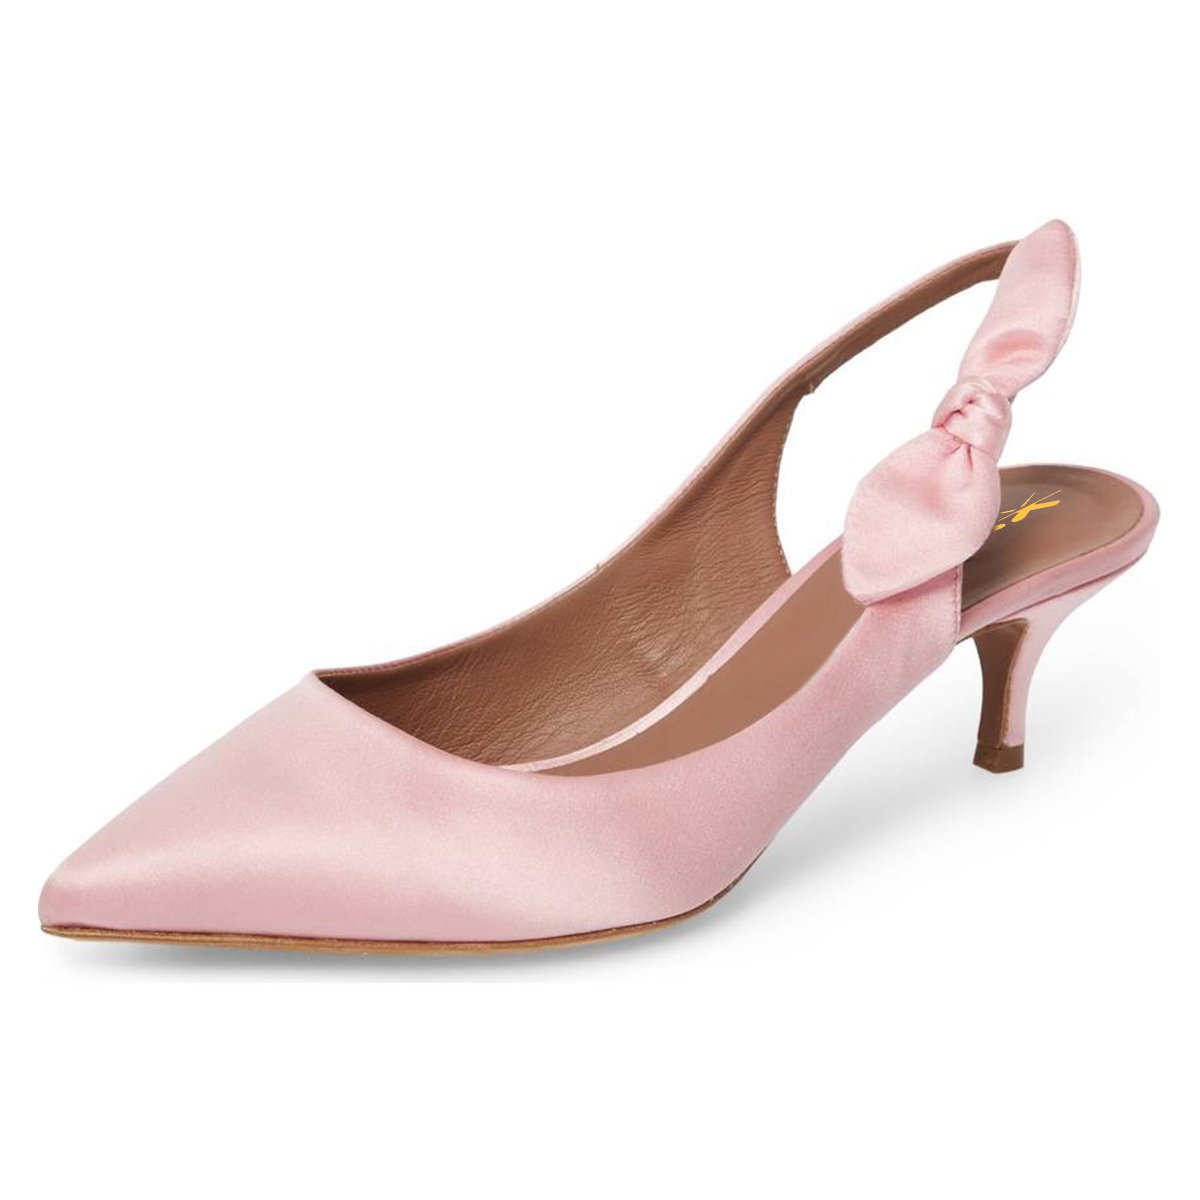 XYD Women Mid Kitten Heel Slingback Pumps Pointed Toe Slip On Dress Sandal Shoes With Bows Size 13 Pink